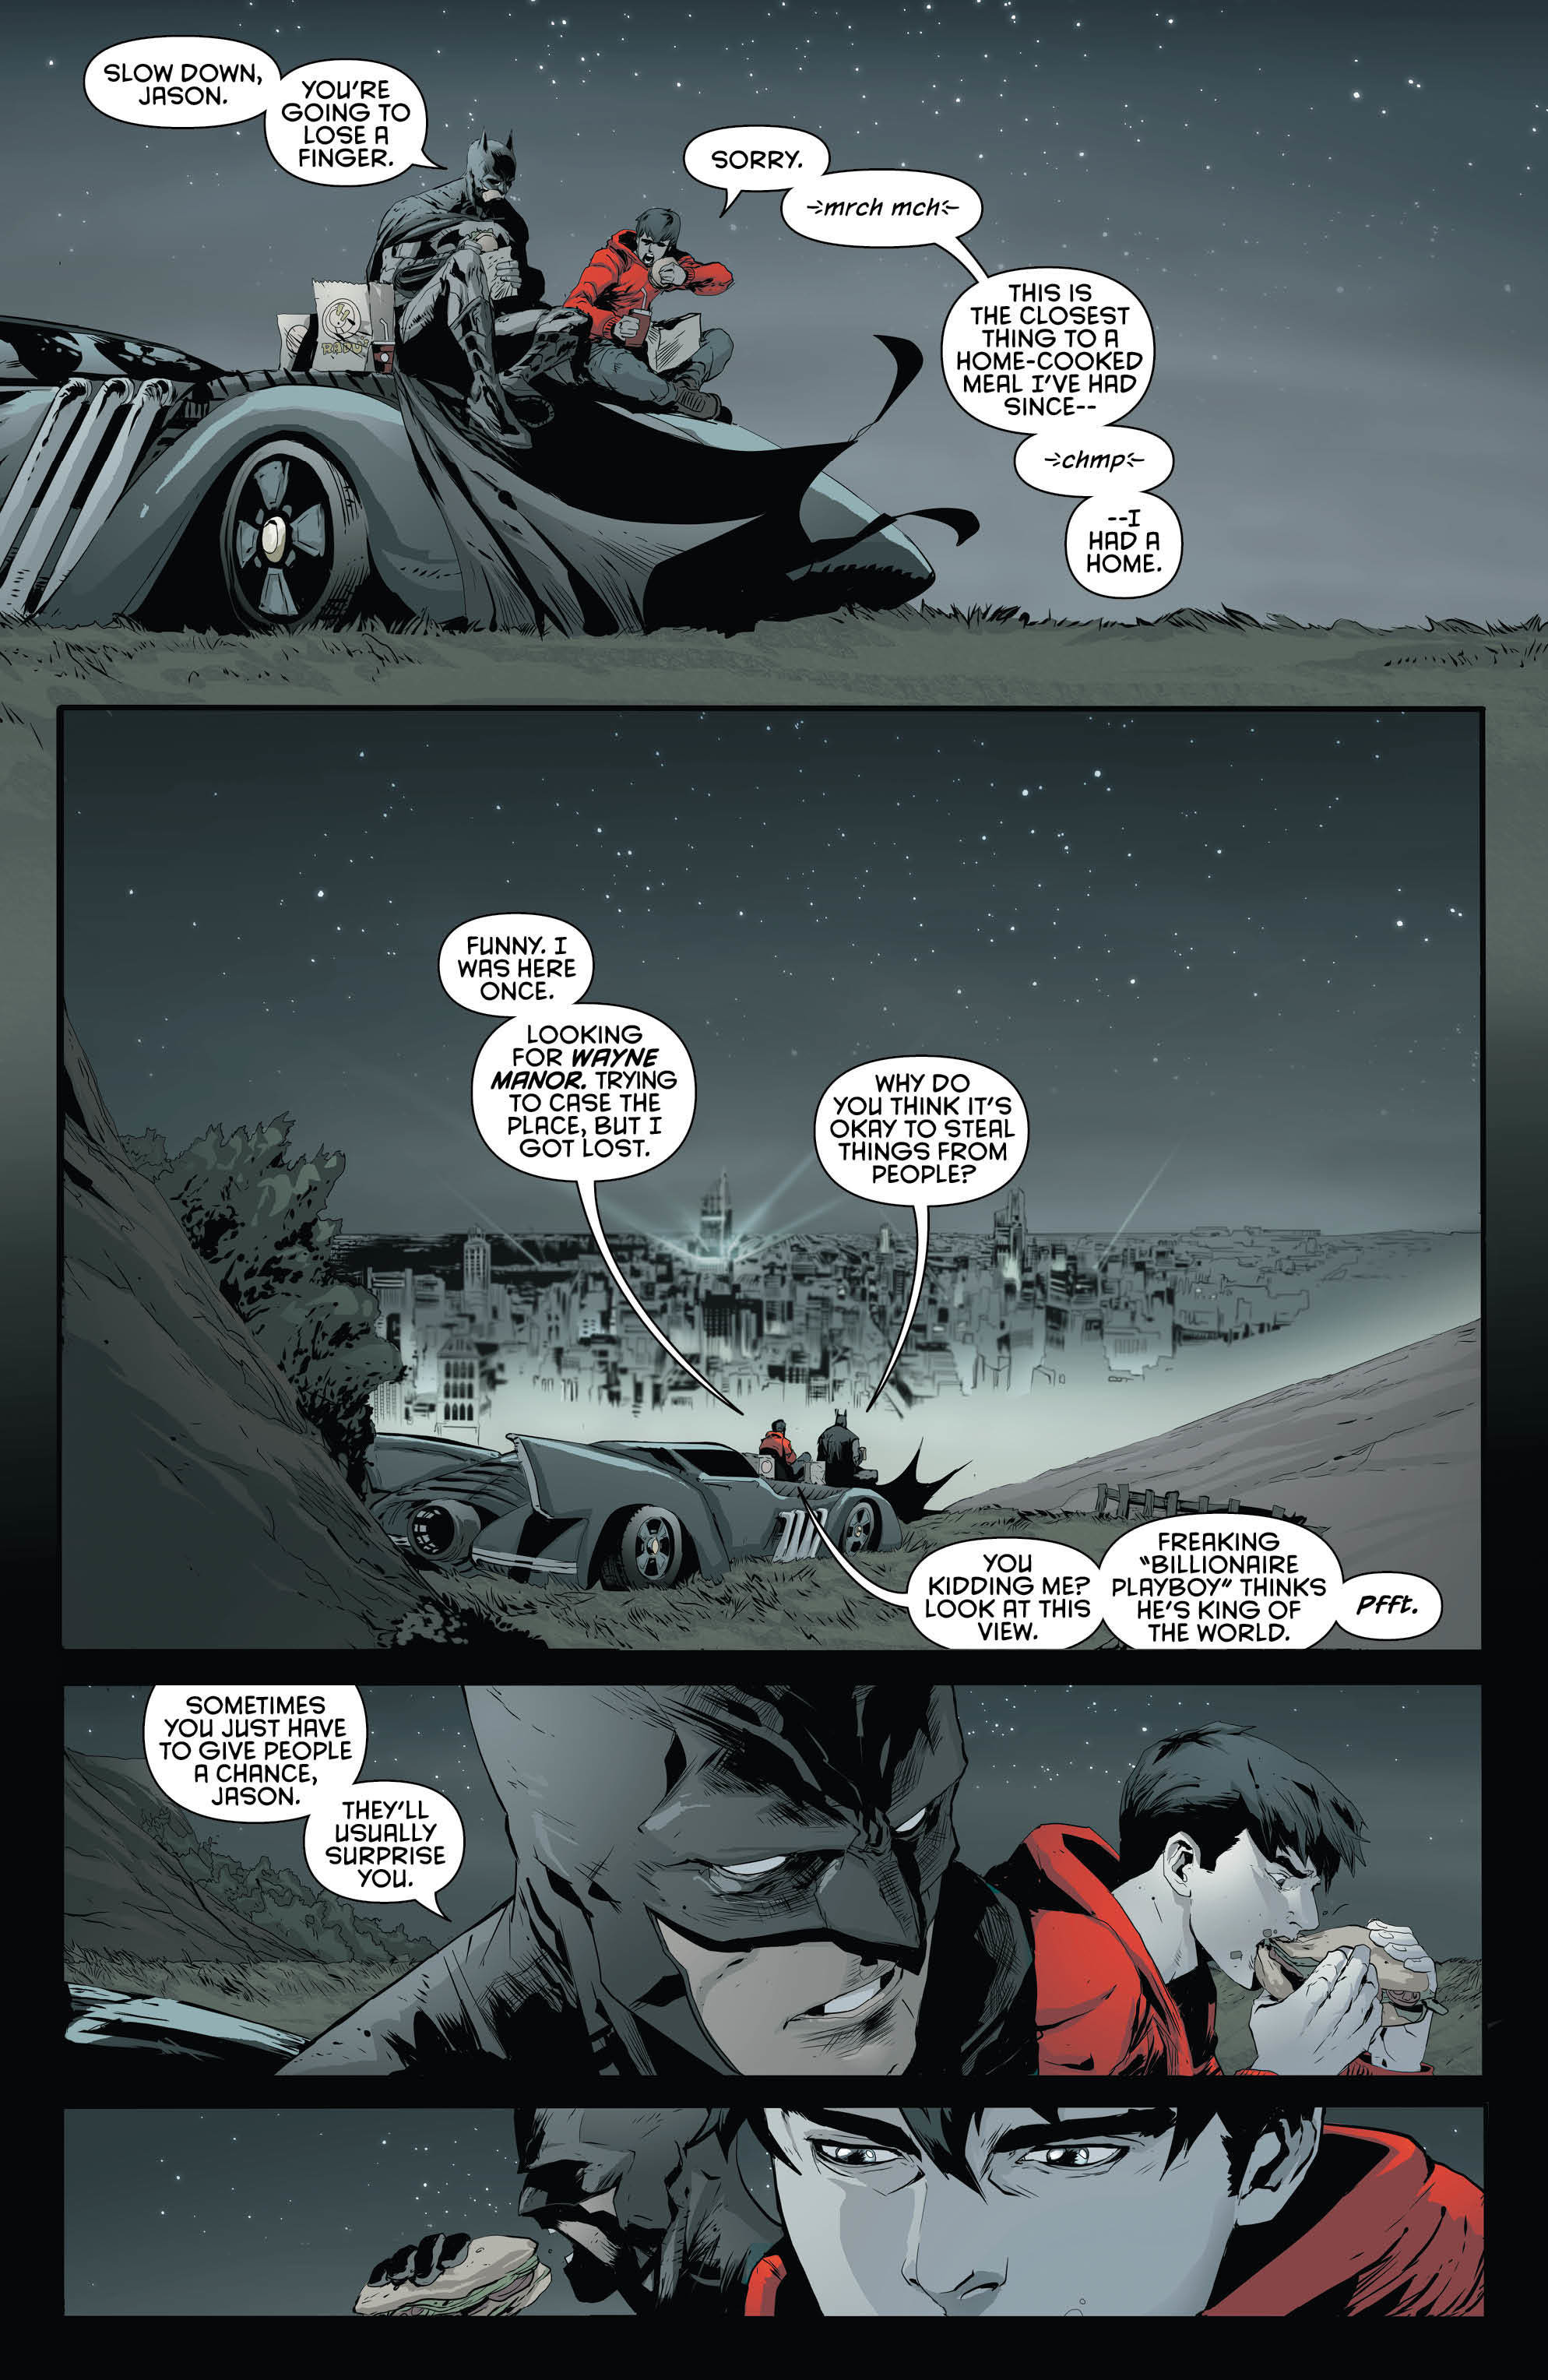 1988x3056 Jason Todd Meets Batman in 'Red Hood and the Outlaws' Preview | Inverse